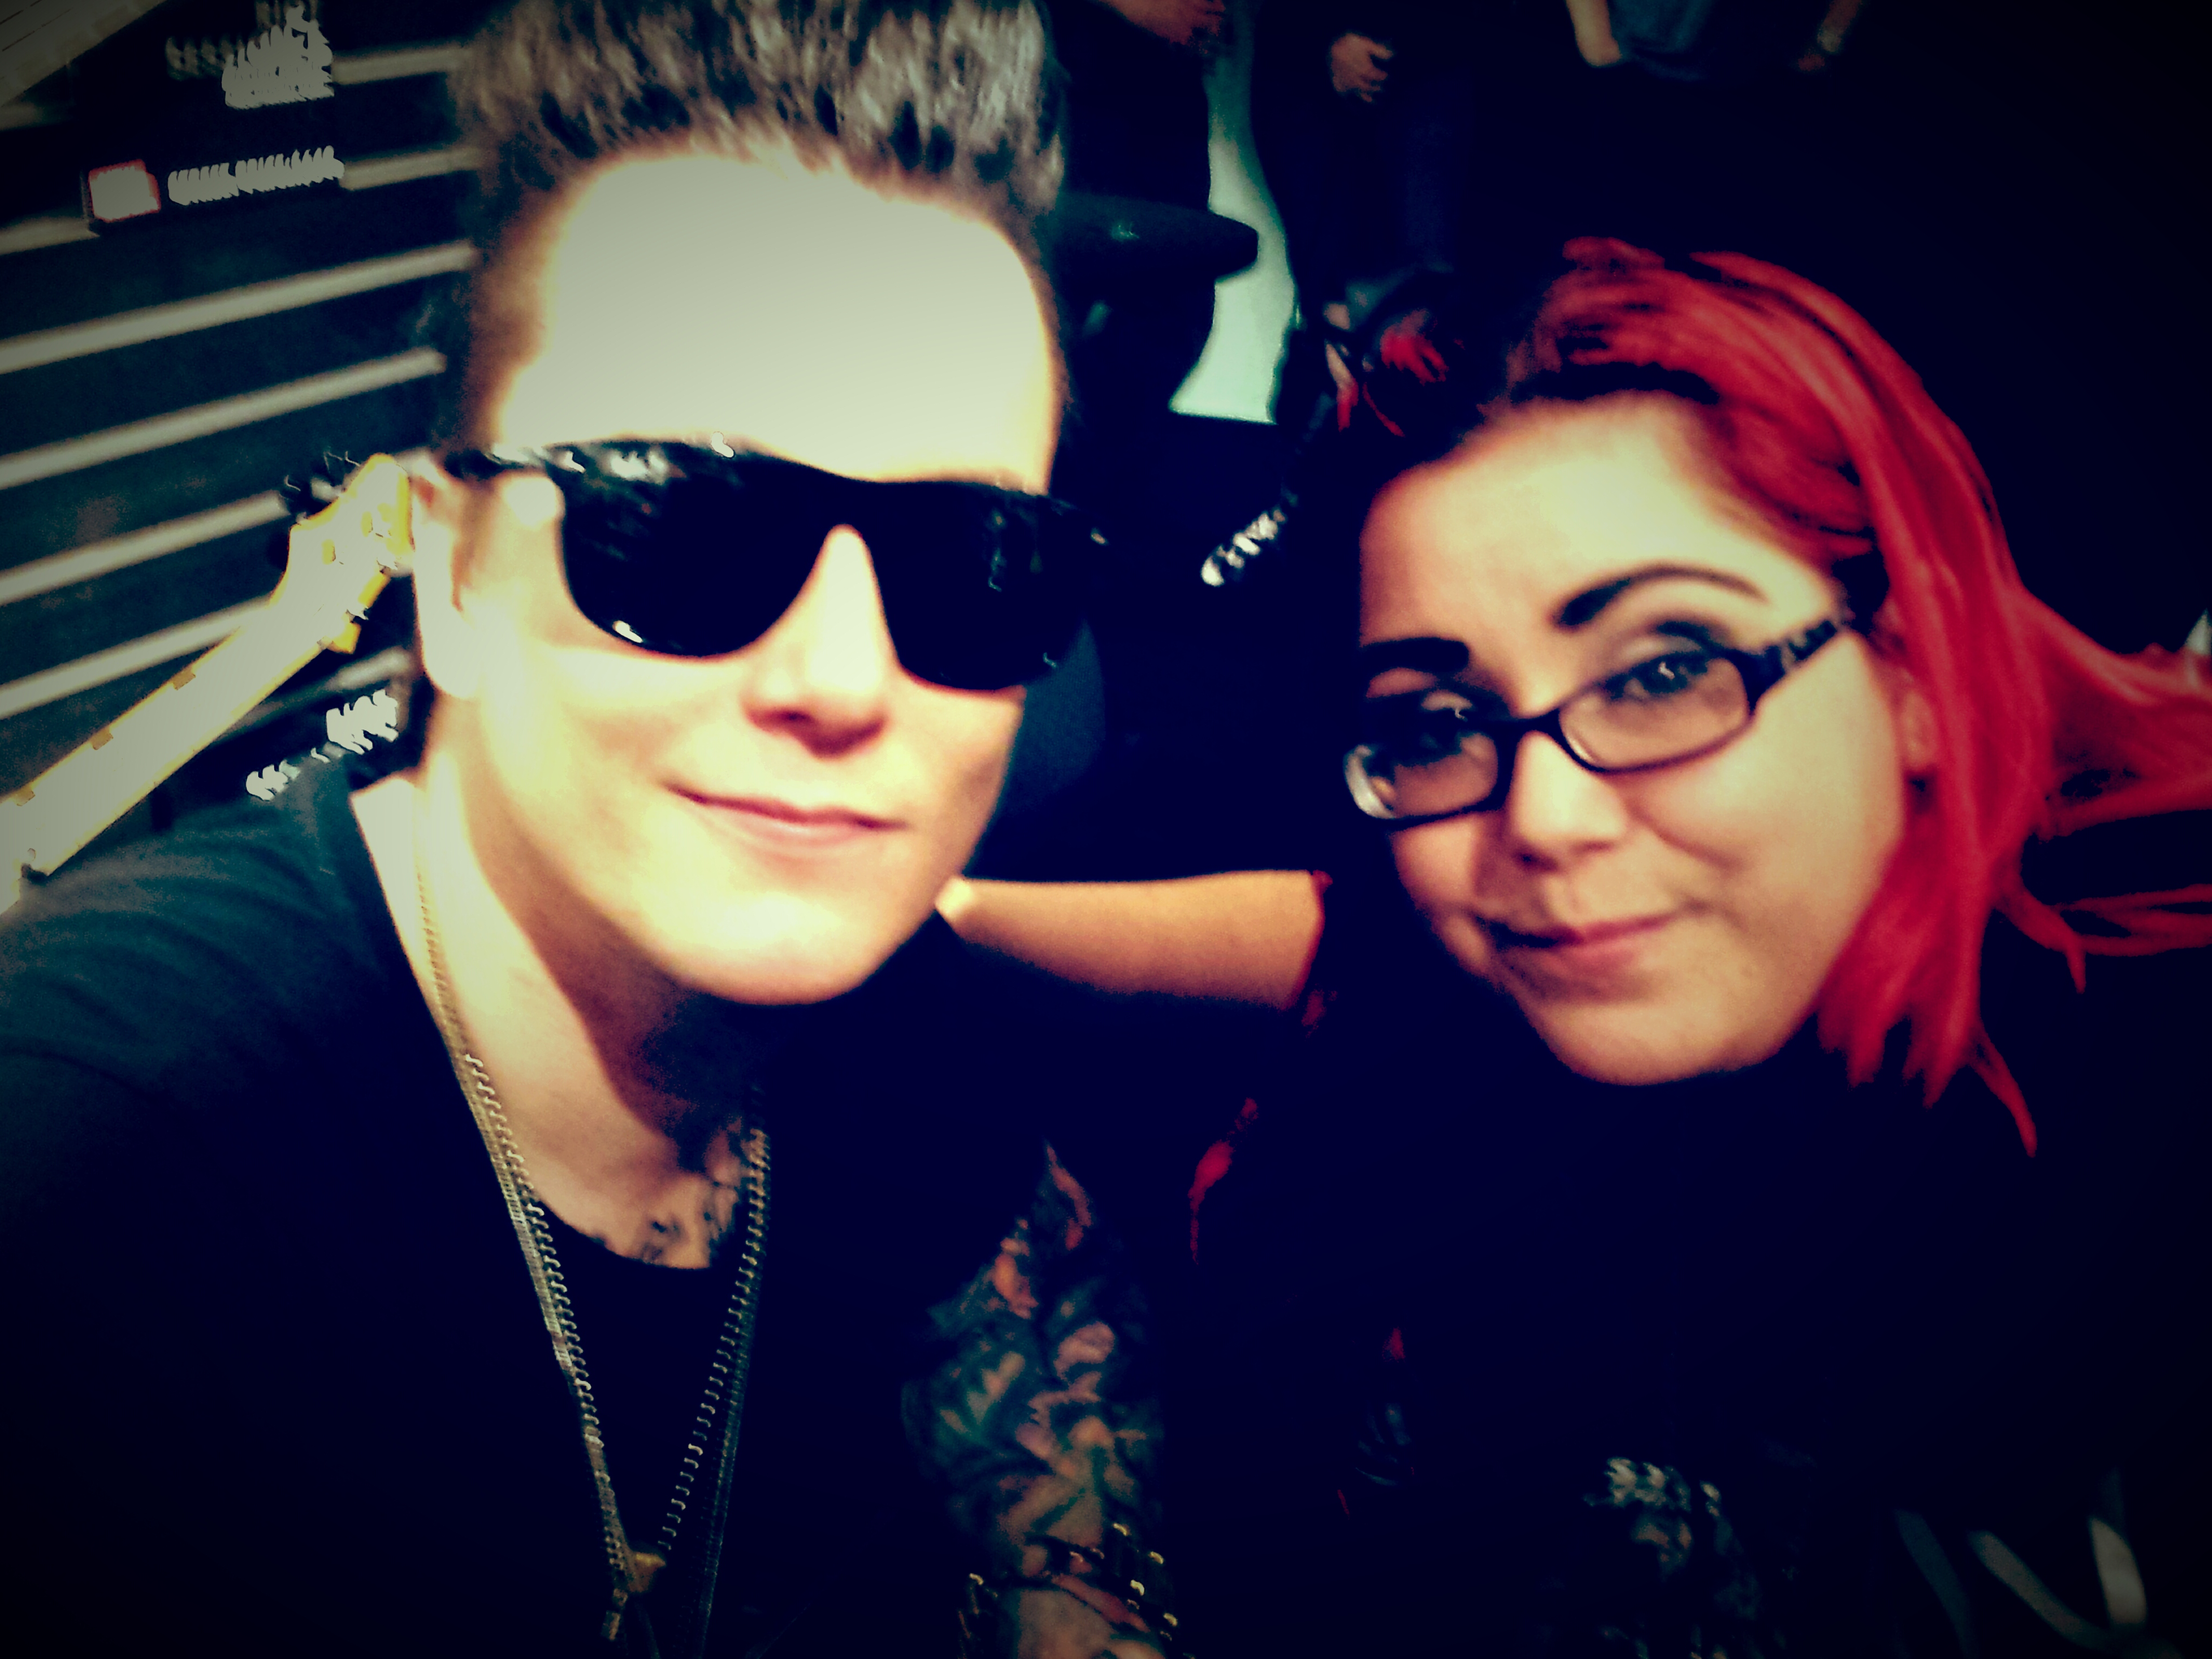 Synyster Gates of Avenged Sevenfold with Mercedes NAMM 1/25/14